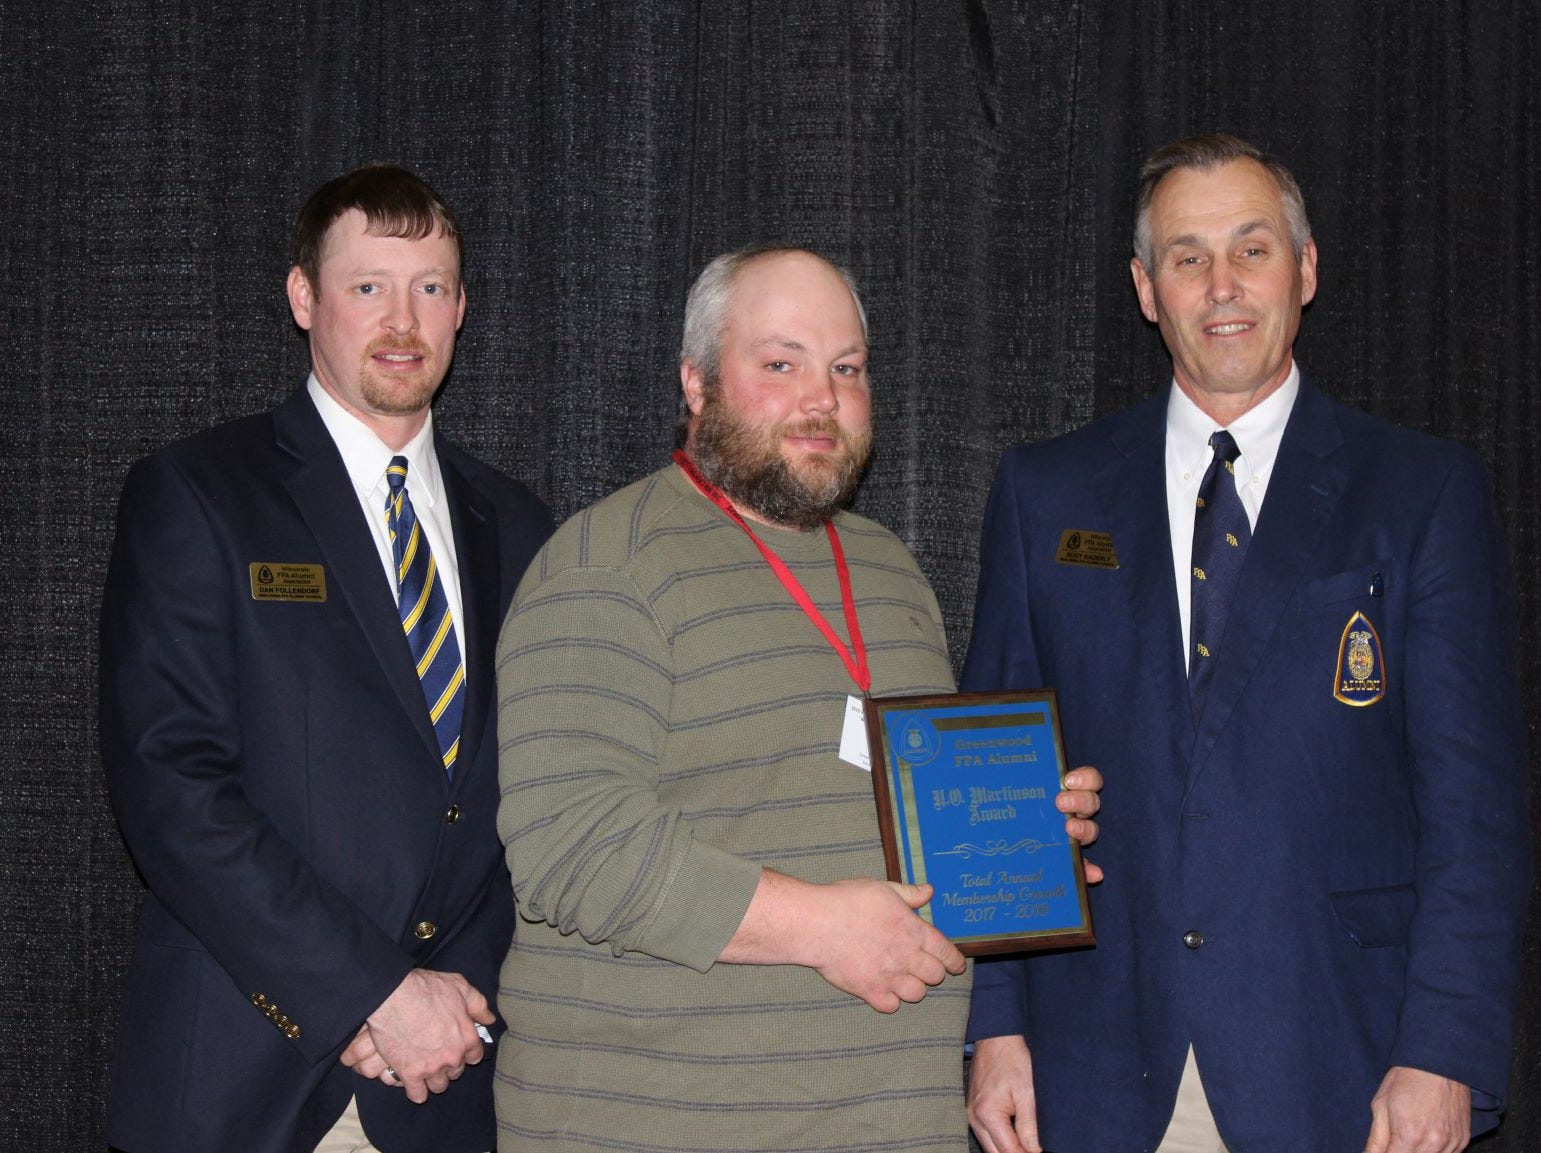 Dan Follendorf (left) and Rudy Kaderly of the WI FFA Alumni Association present present Greenwood FFA Alumni with the Dr. V.O. Martinson Award, given to the FFA Alumni with the greatest increase in annual membership percentage.